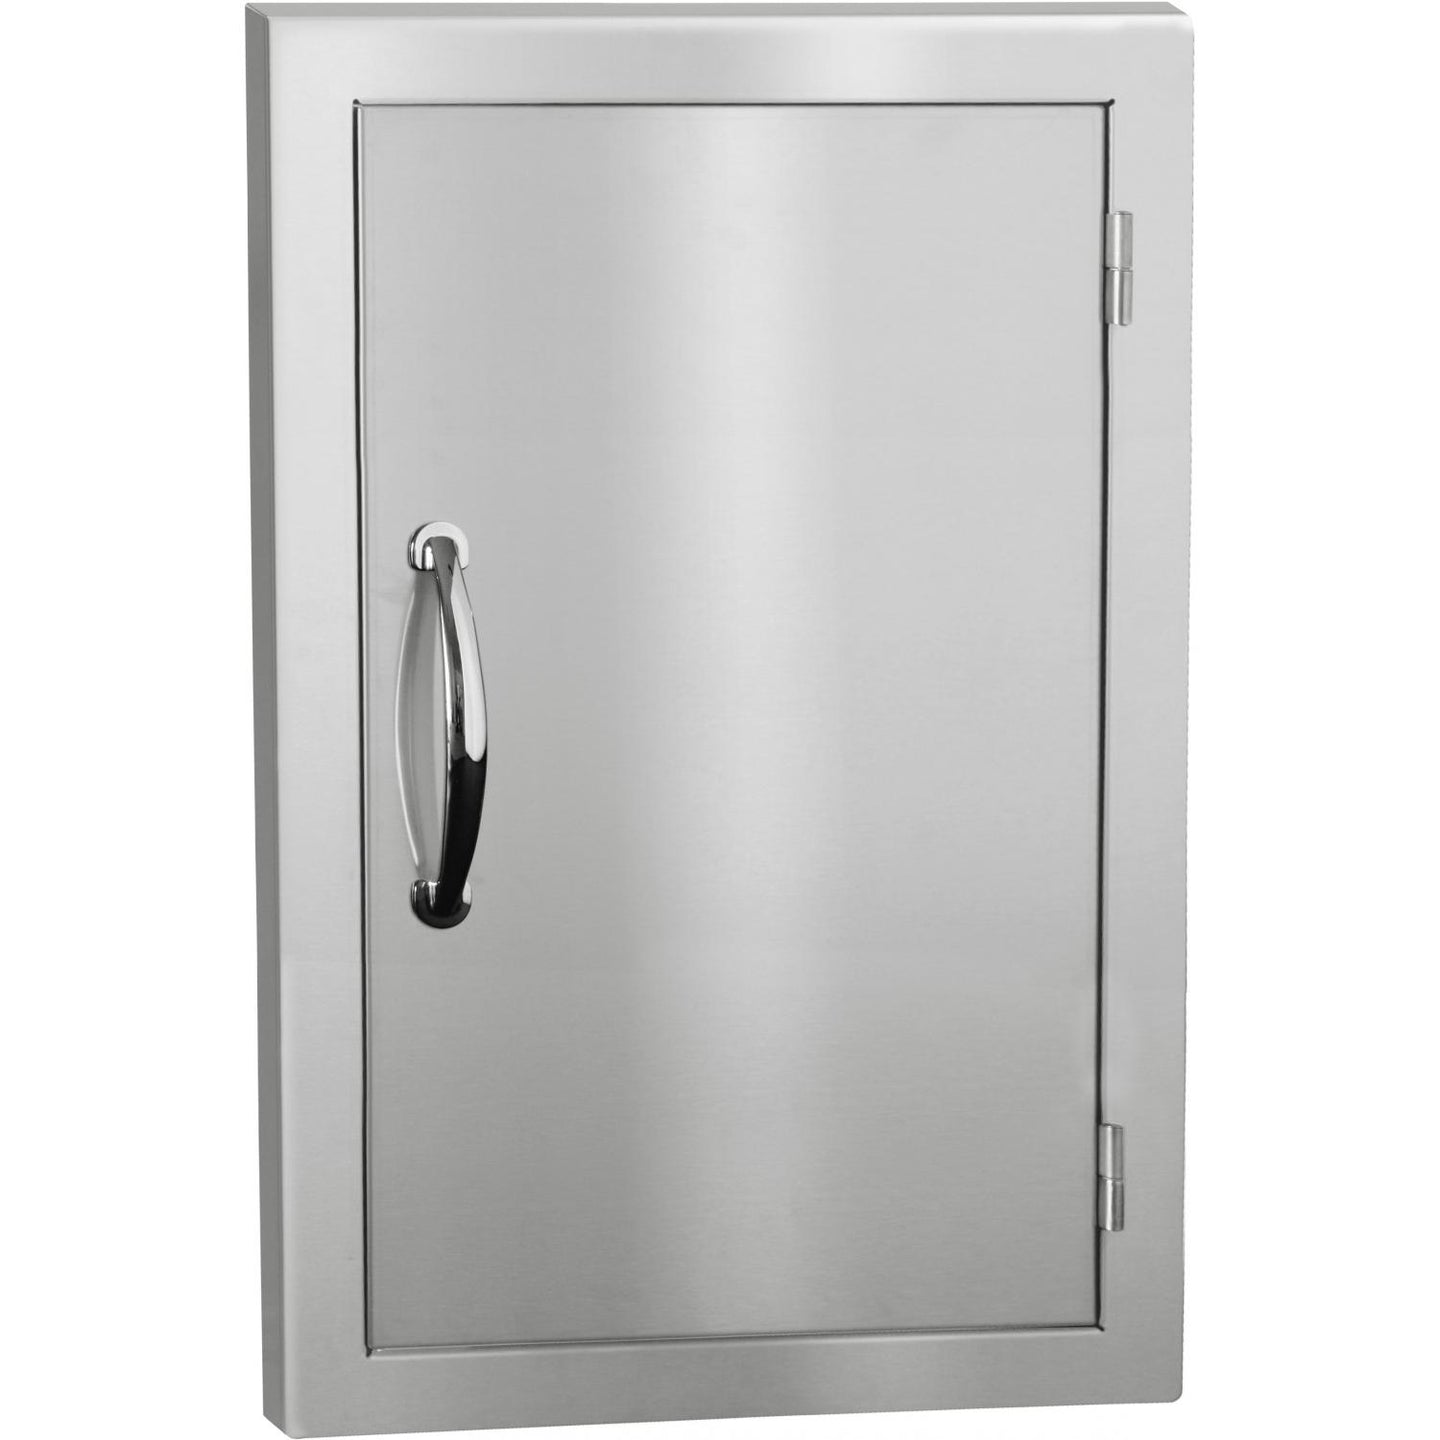 Summerset 17-Inch Stainless Steel Masonry Single Access Door - Vertical - SSDVL-M